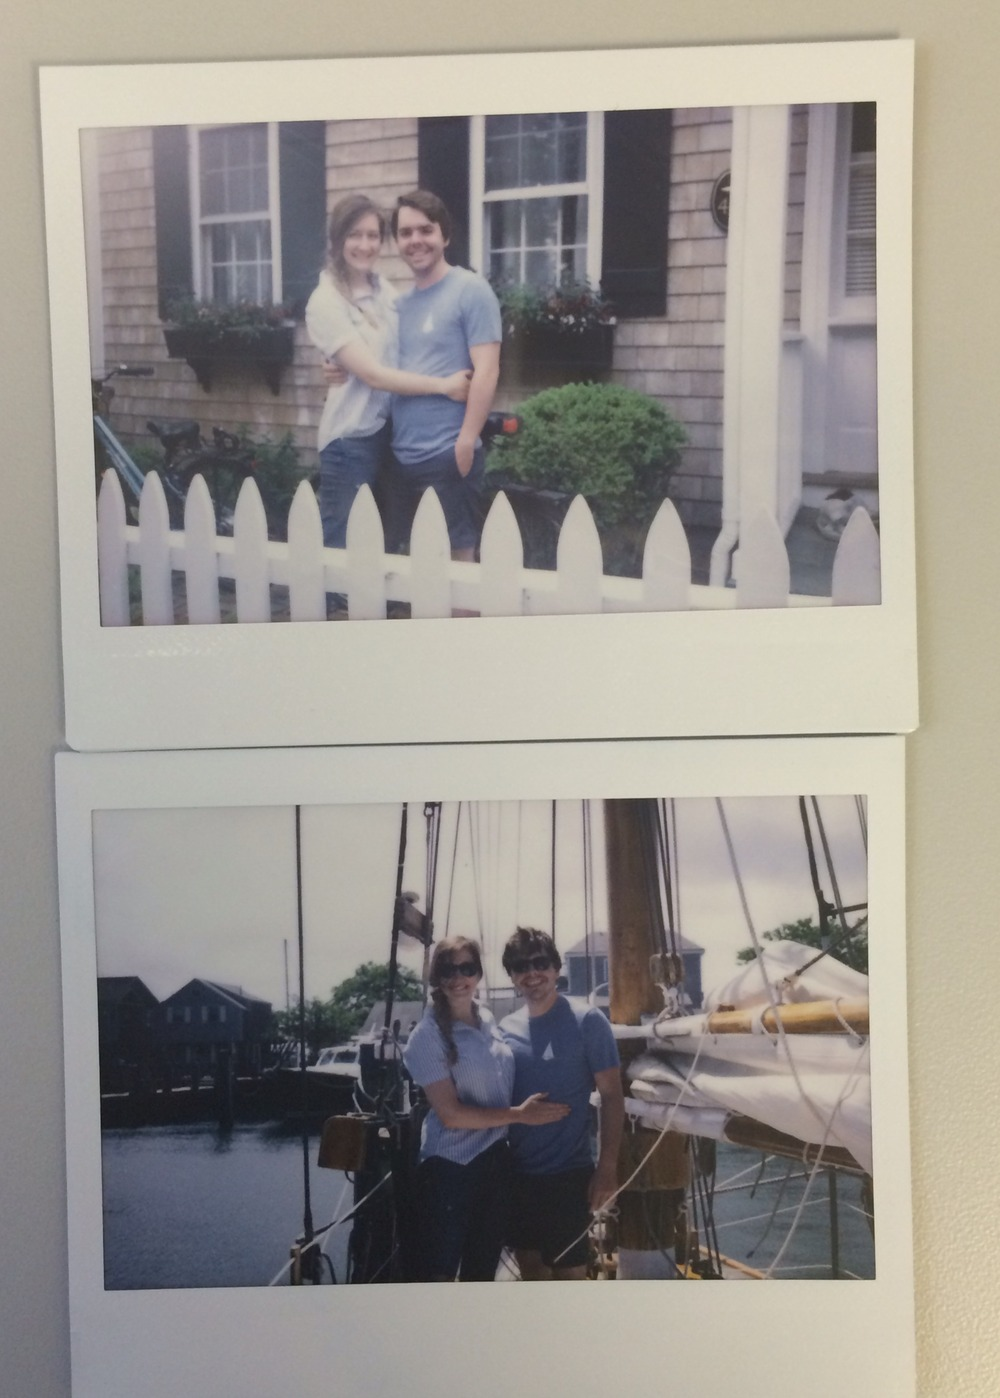 Polaroids for days. Love him.